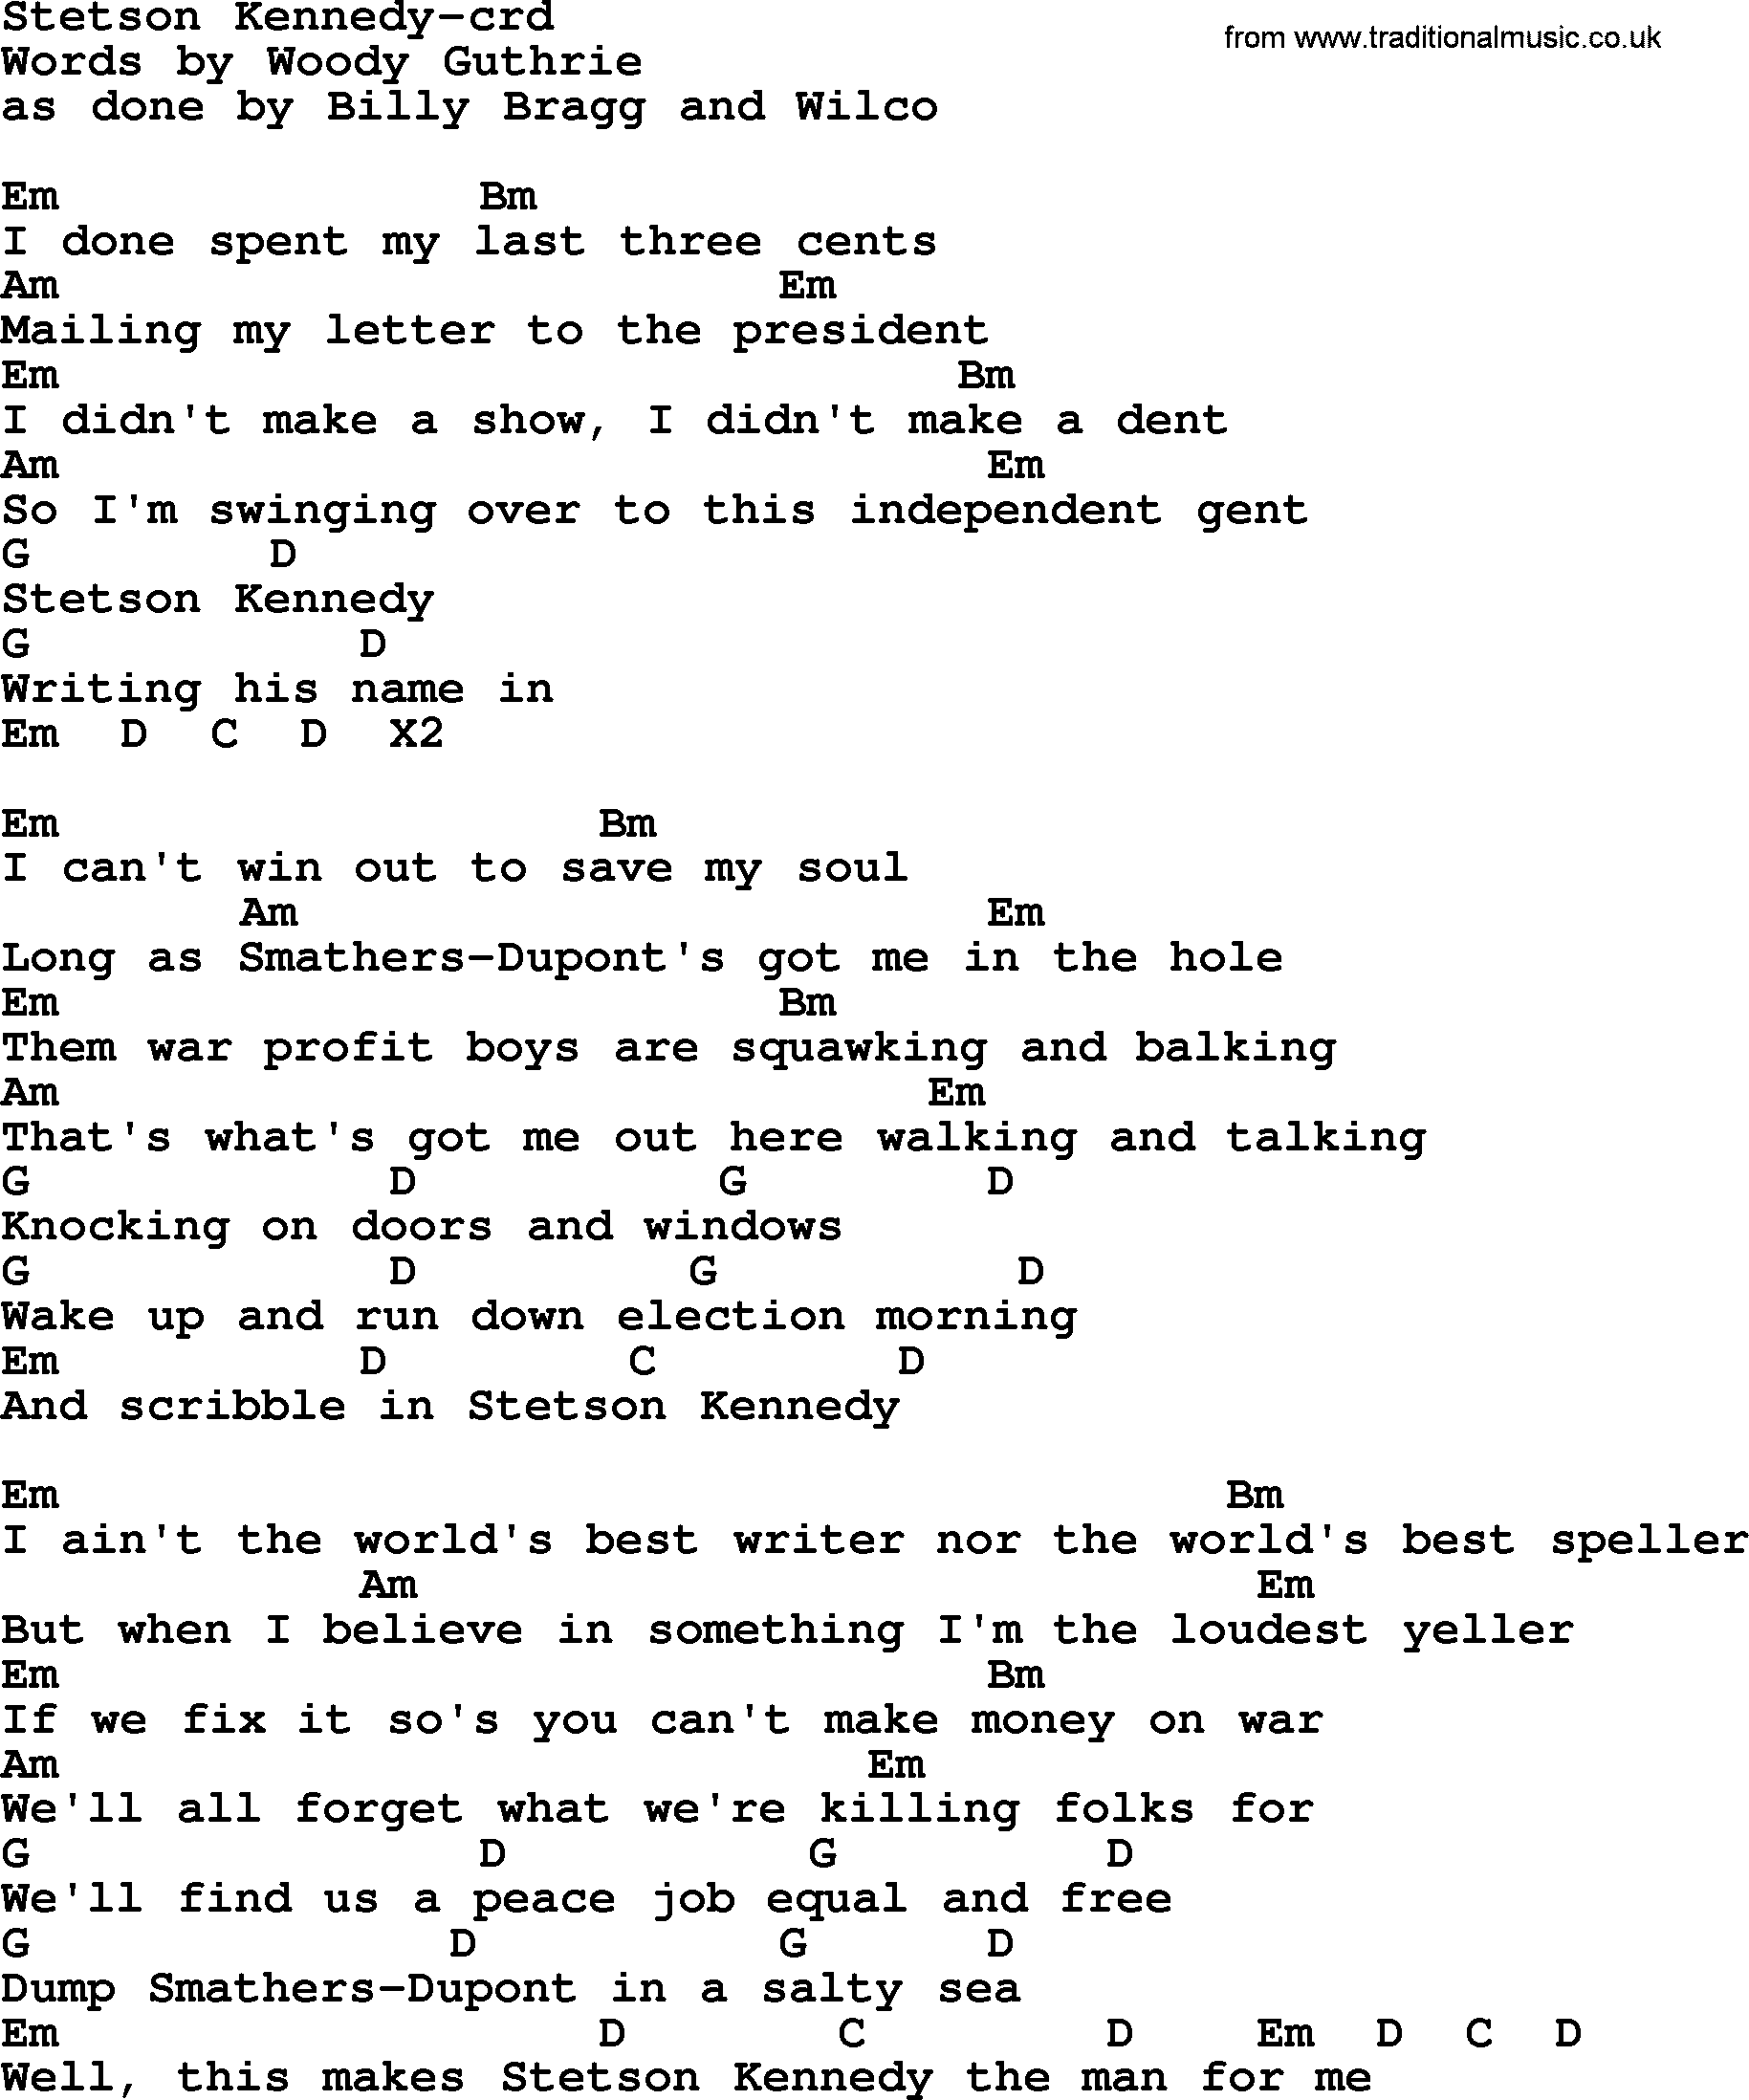 Woody Guthrie Song Stetson Kennedy Lyrics And Chords